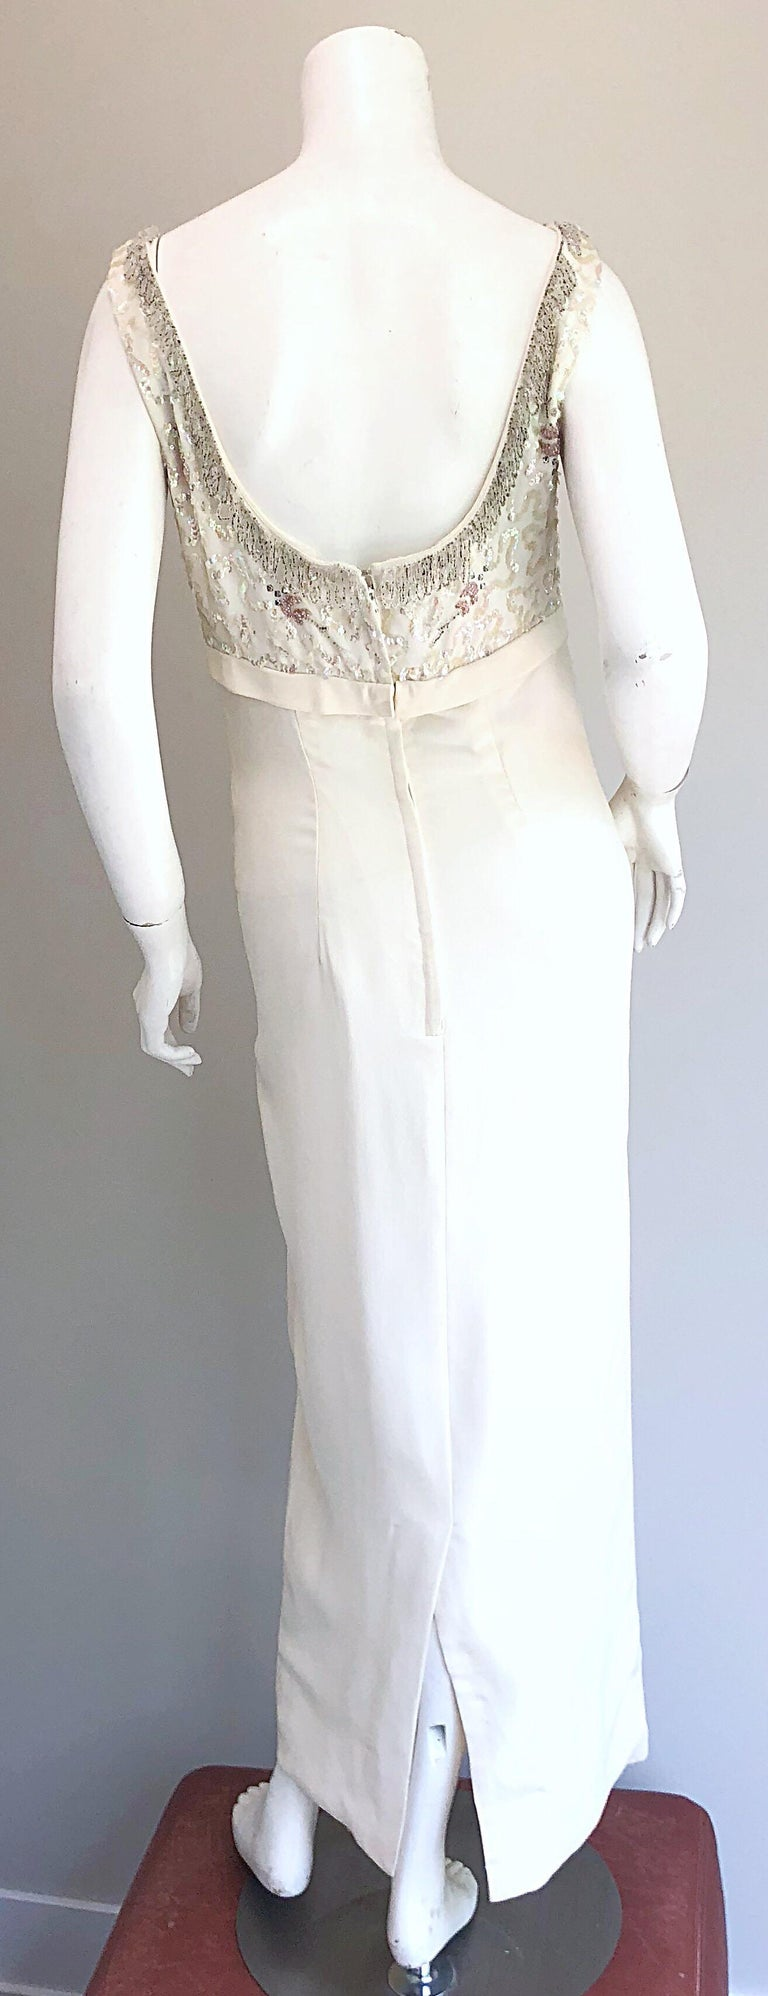 Gorgeous 1960s White Sequin Beaded Vintage Crepe 60s Evening Gown ...